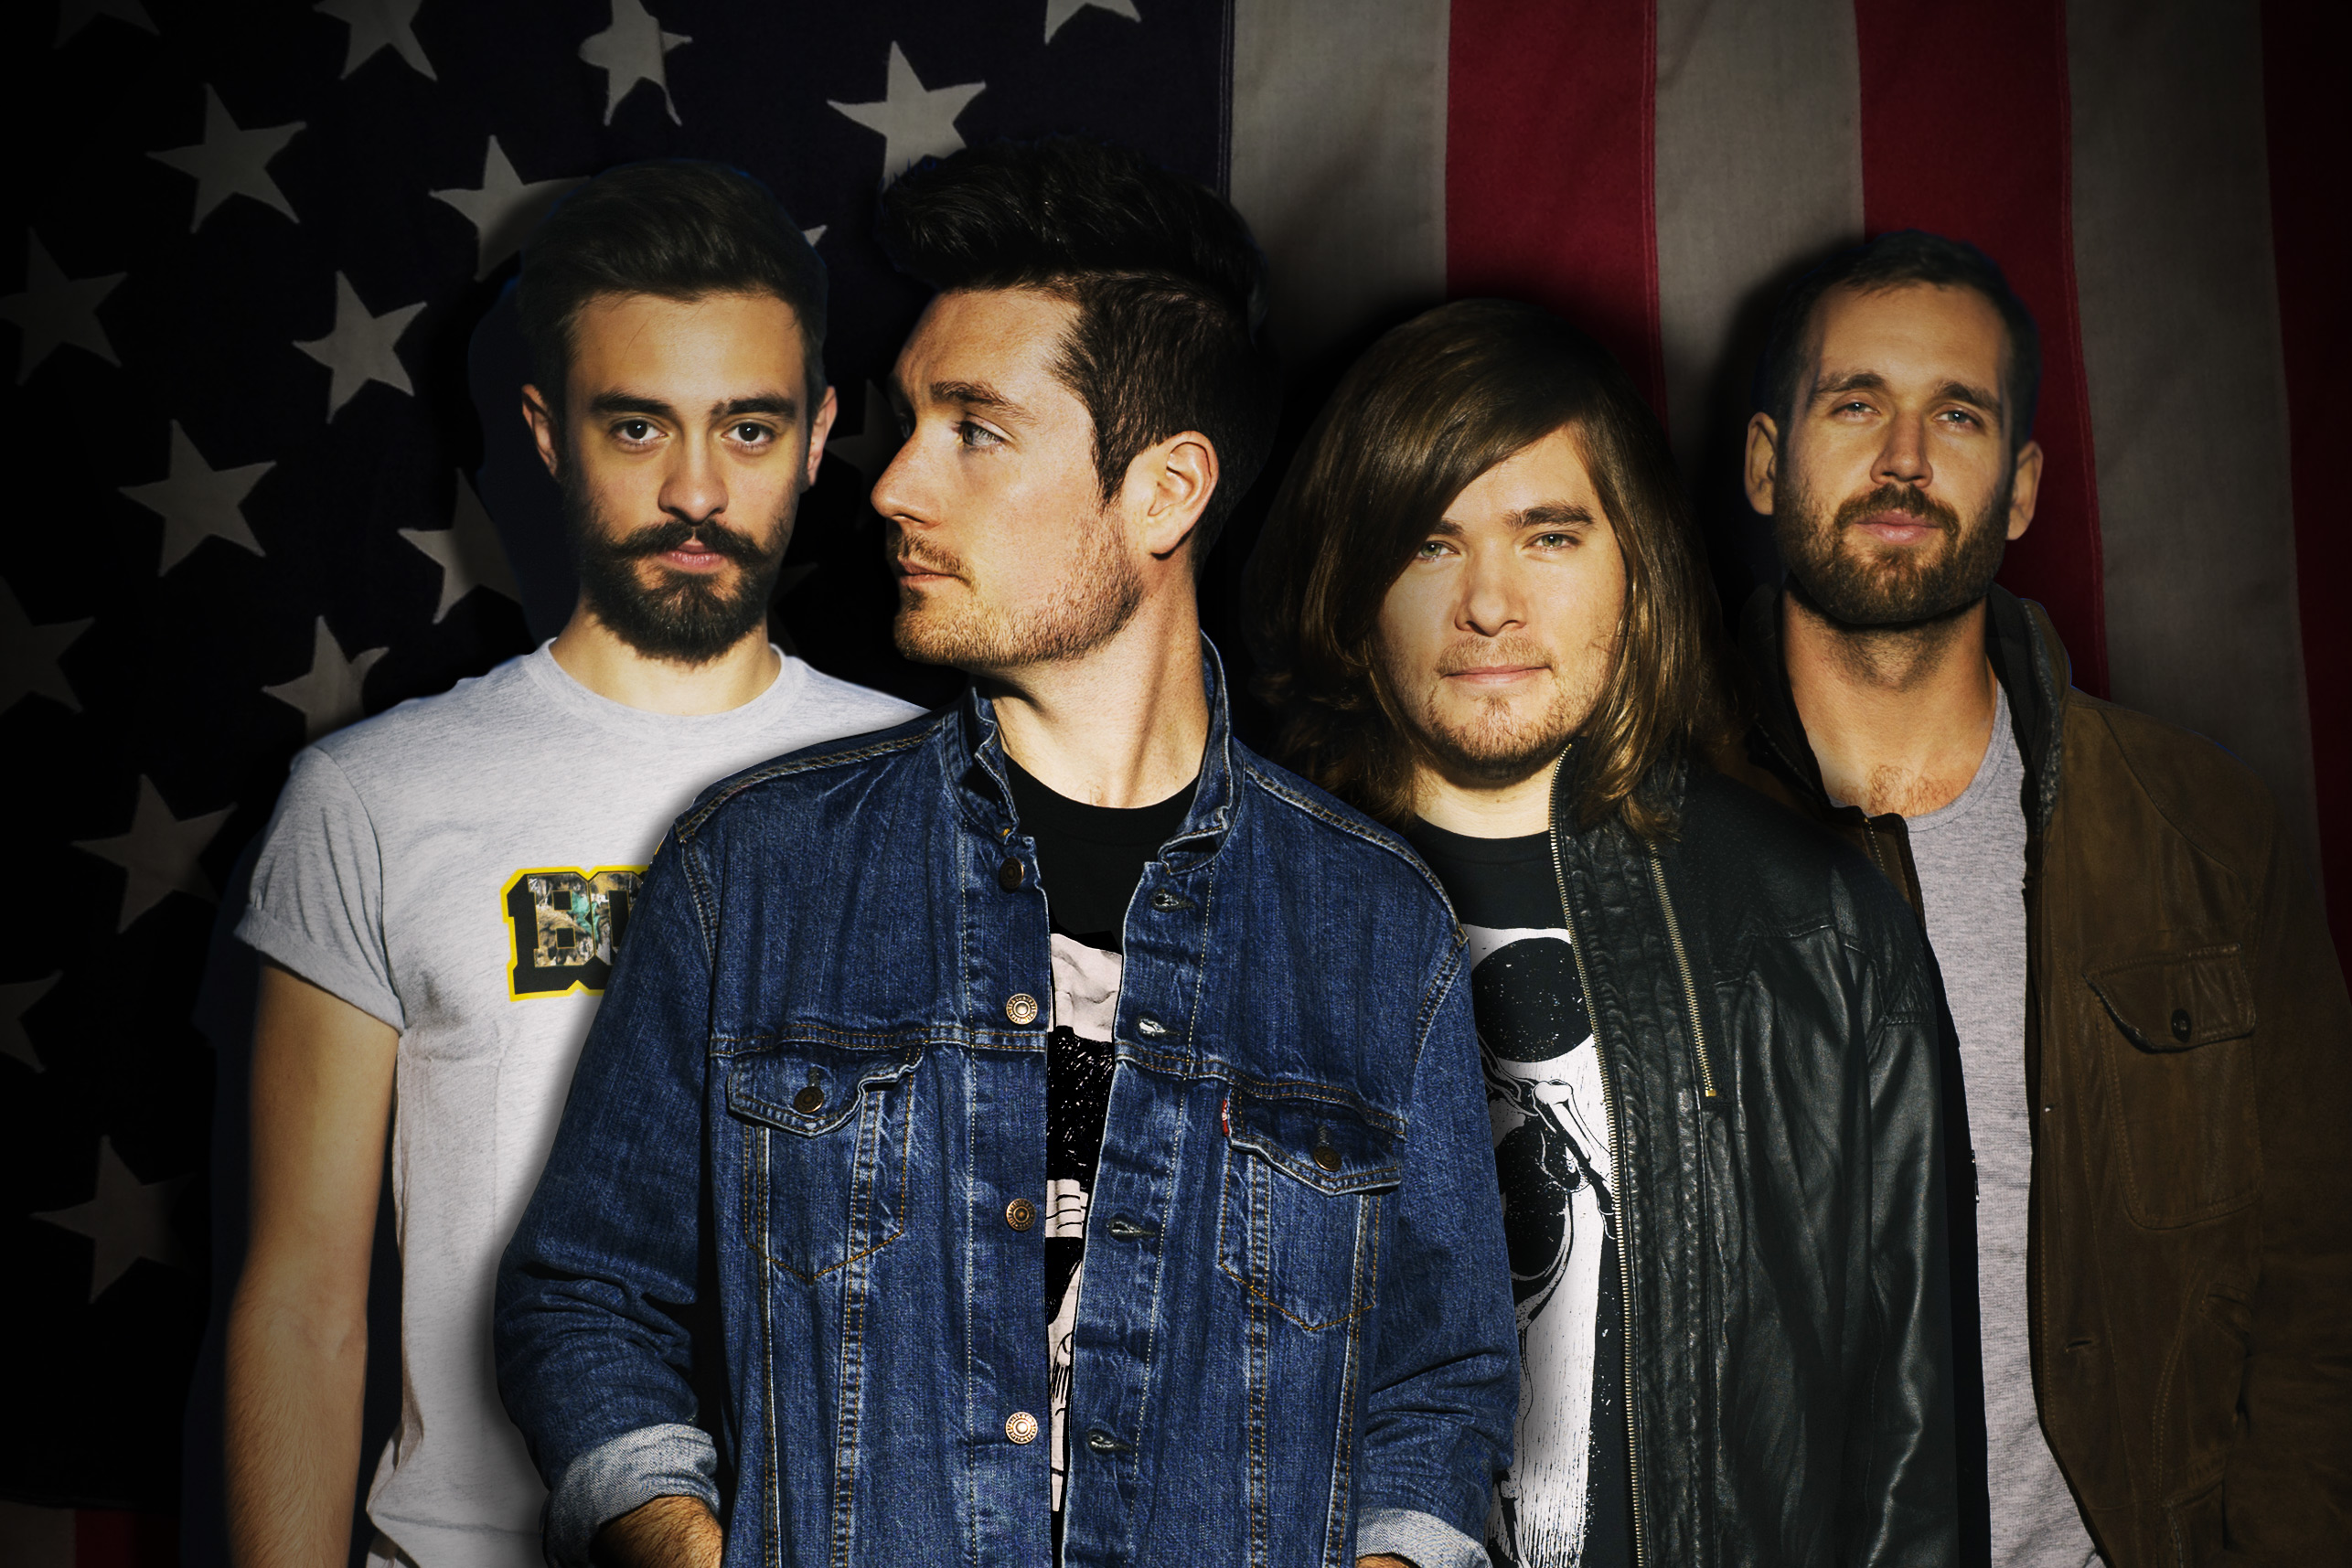 New issue of DIY out now, feat. Bastille, Superfood, Foo Fighters & more